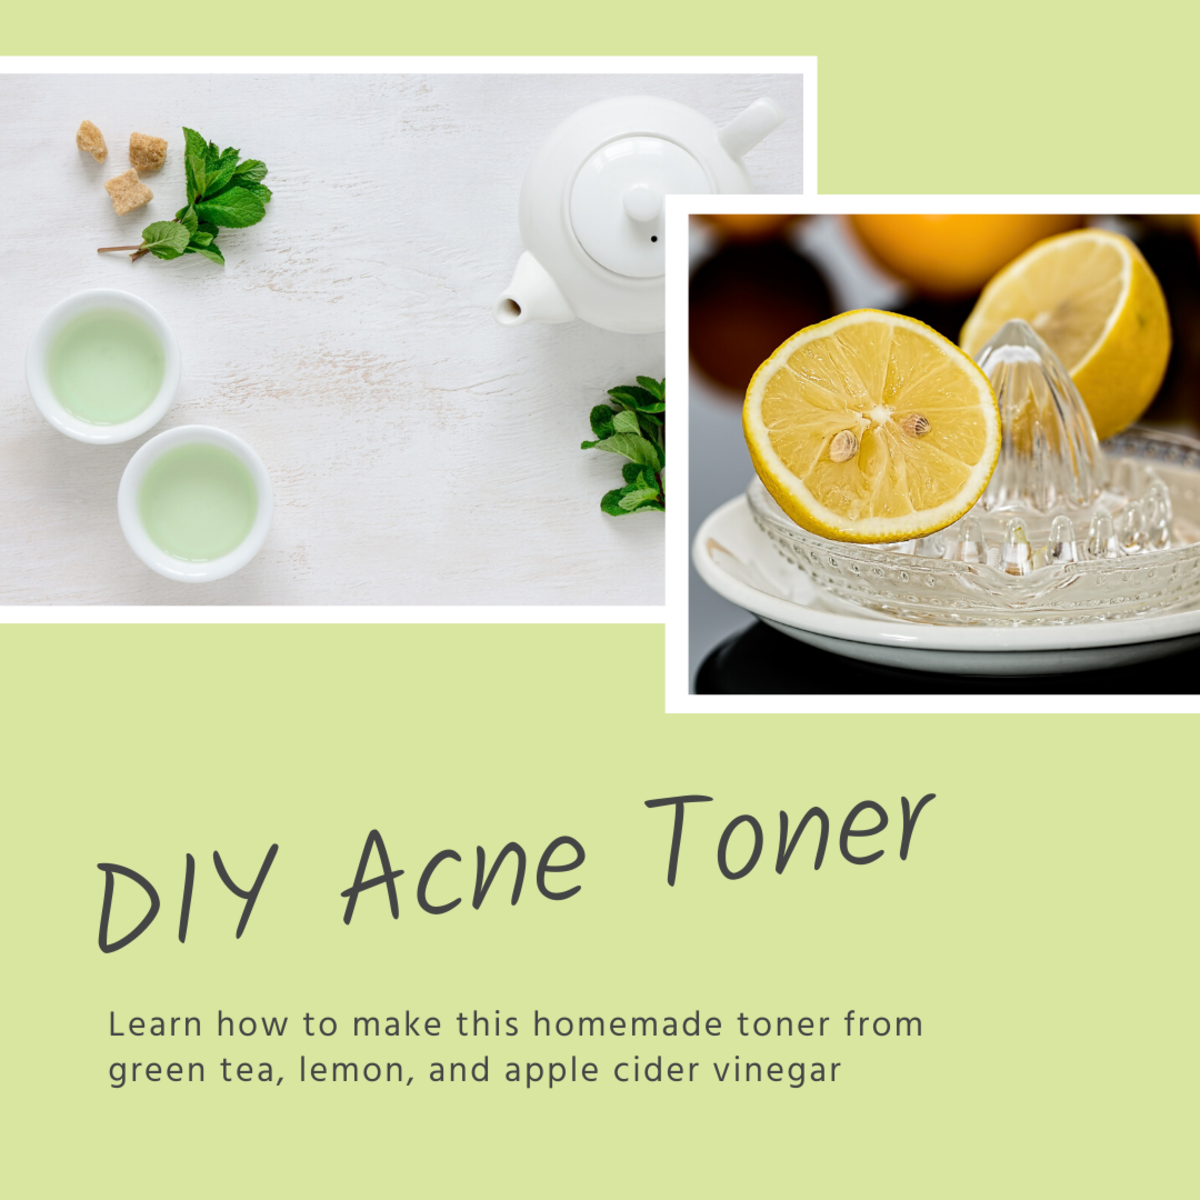 This guide will break down how to make your own DIY acne toner from green tea, lemon, and apple cider vinegar.